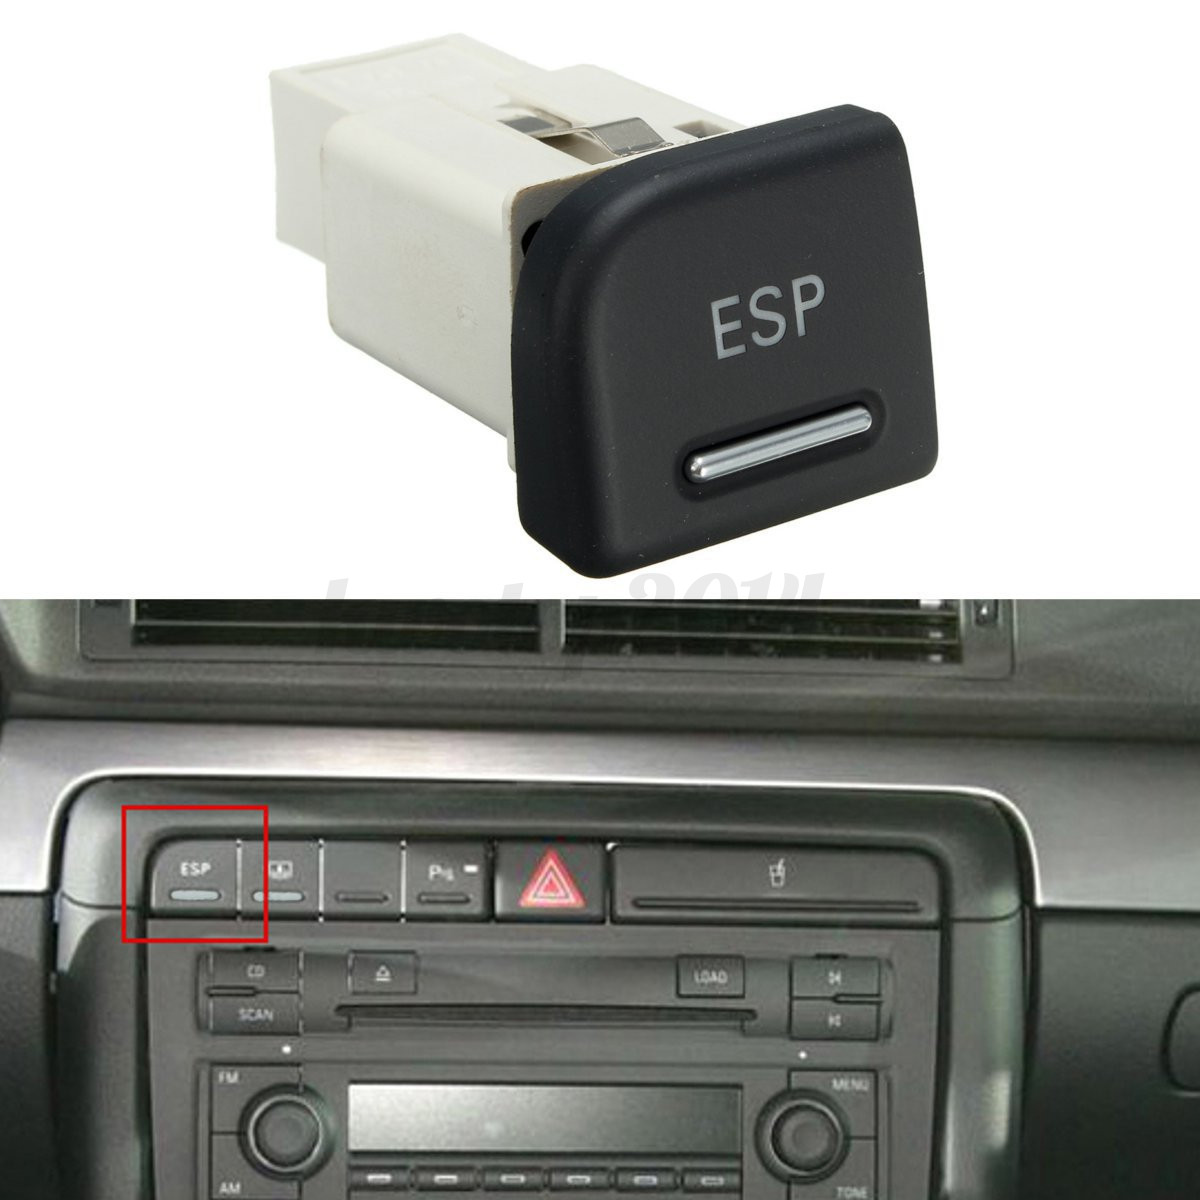 bouton esp interrupteur switch pour audi a4 8e b6 b7 2003 2008. Black Bedroom Furniture Sets. Home Design Ideas